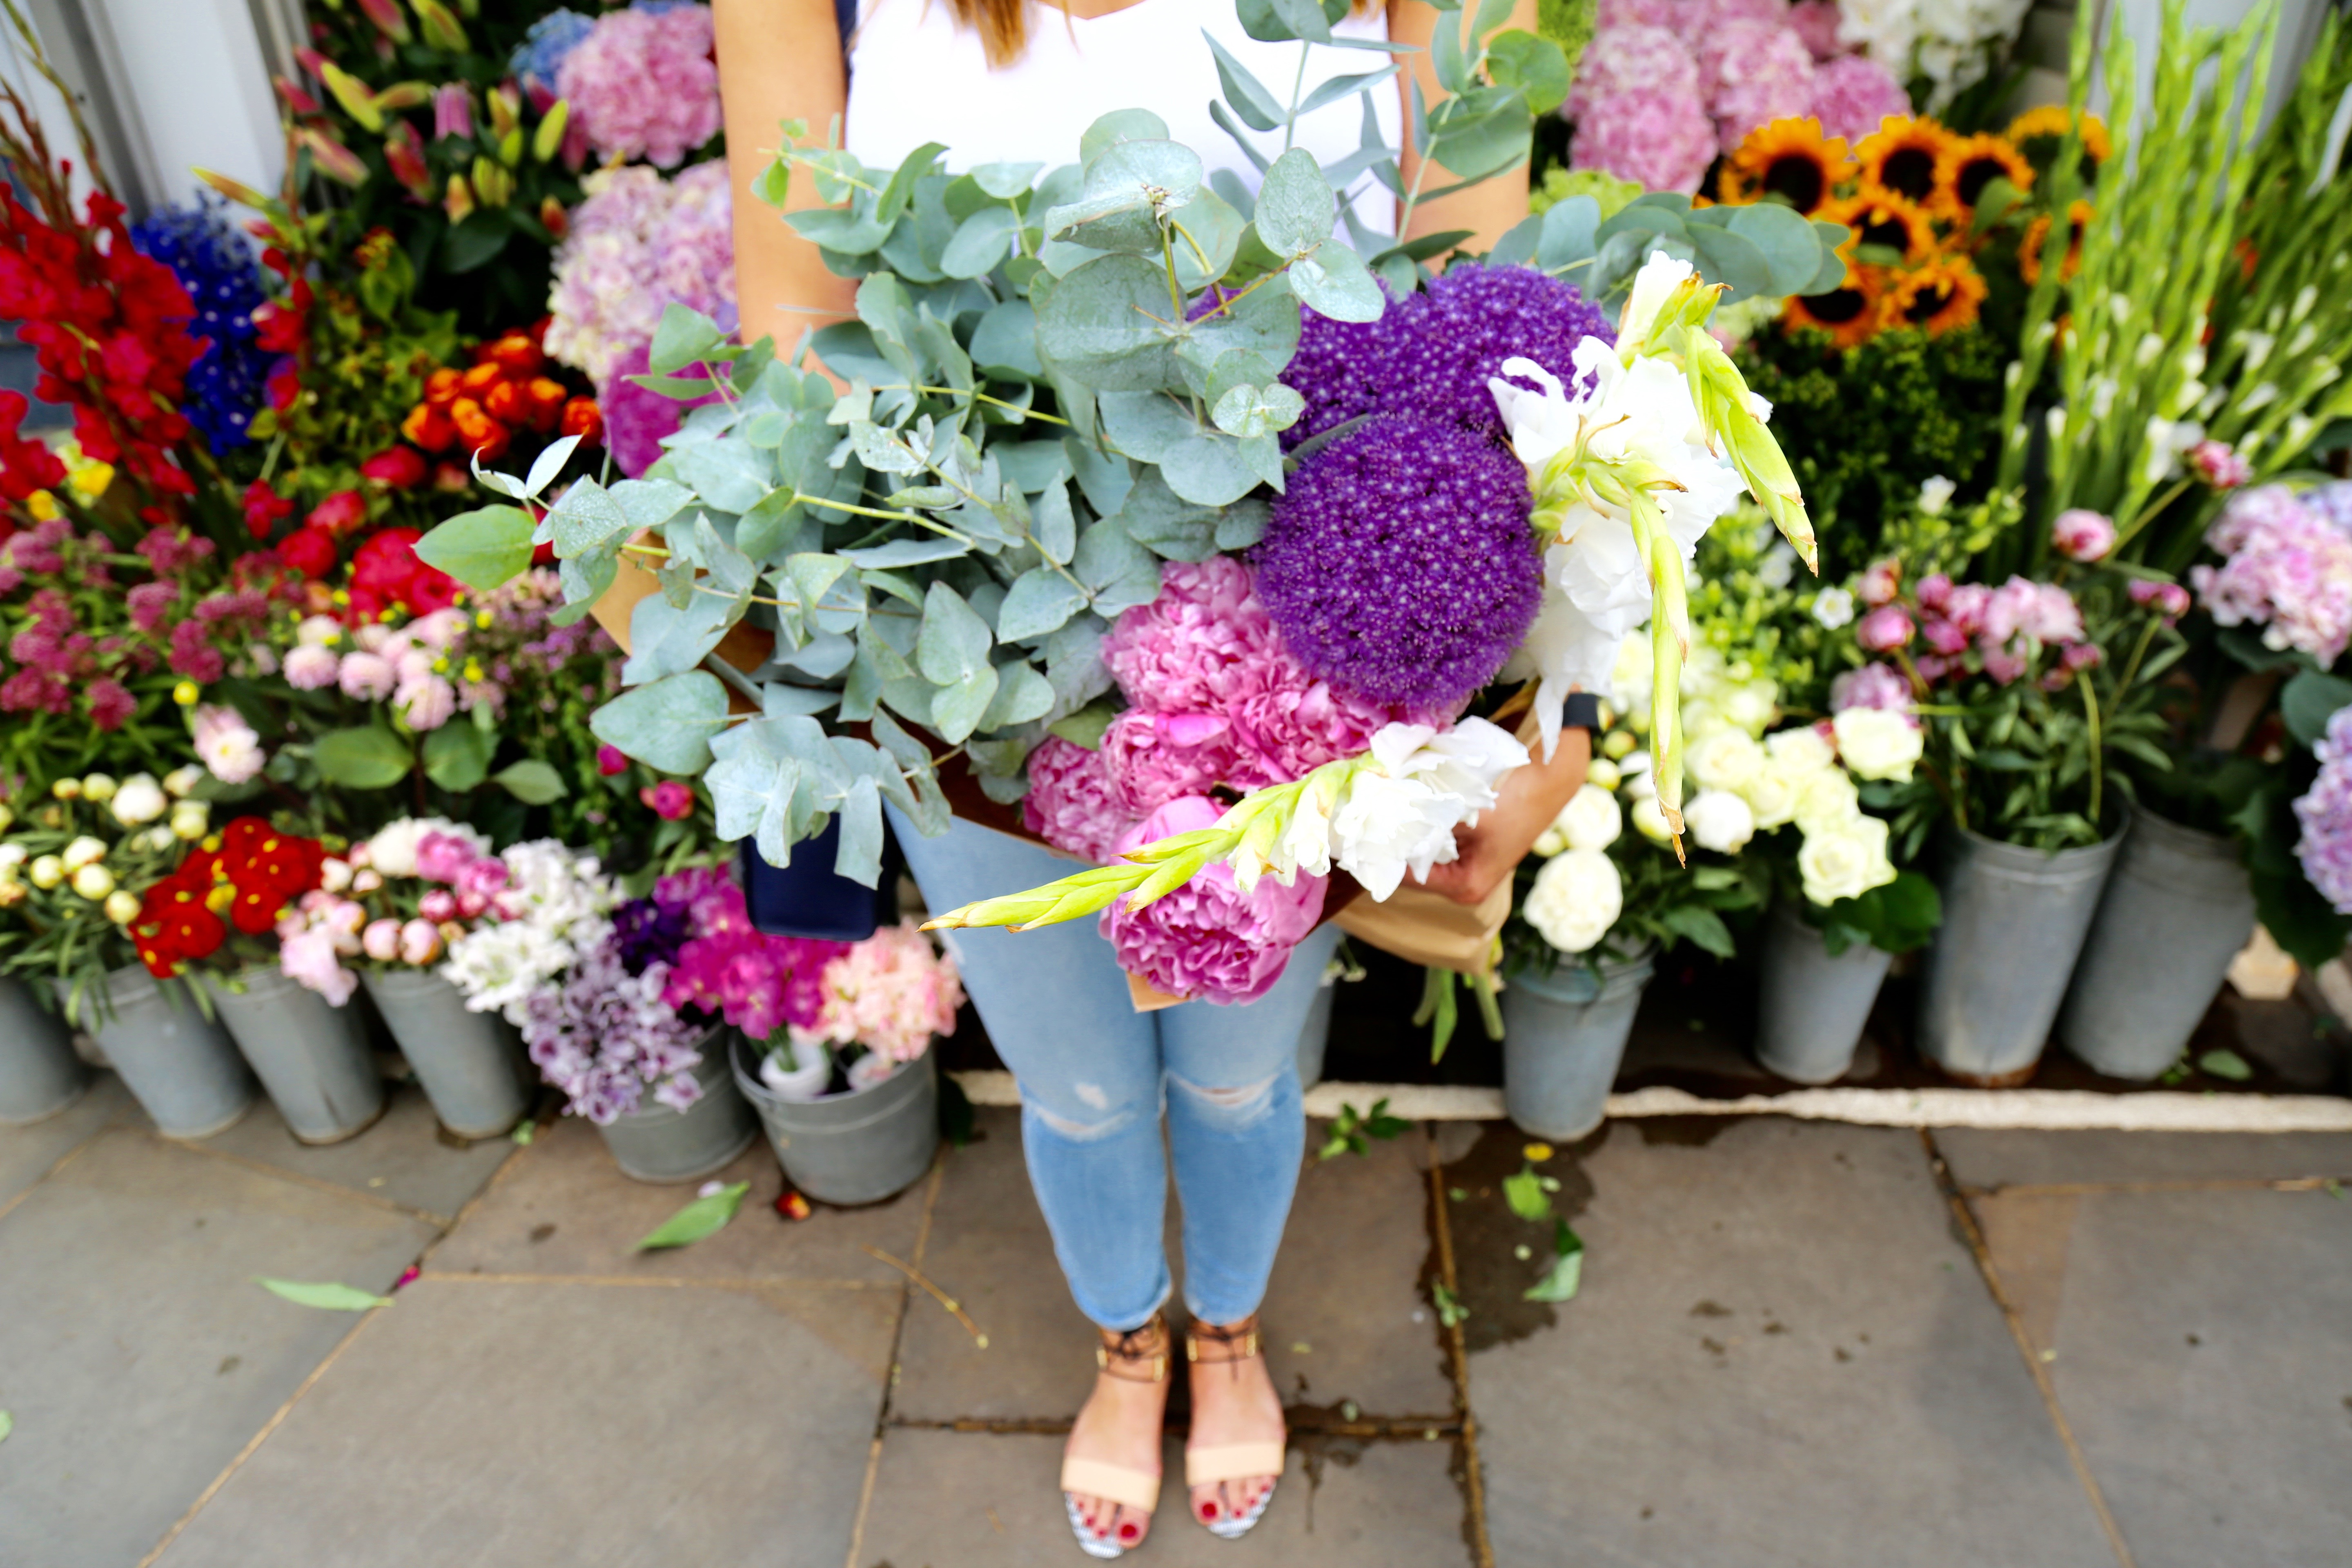 Top 10 Flower Stands In London